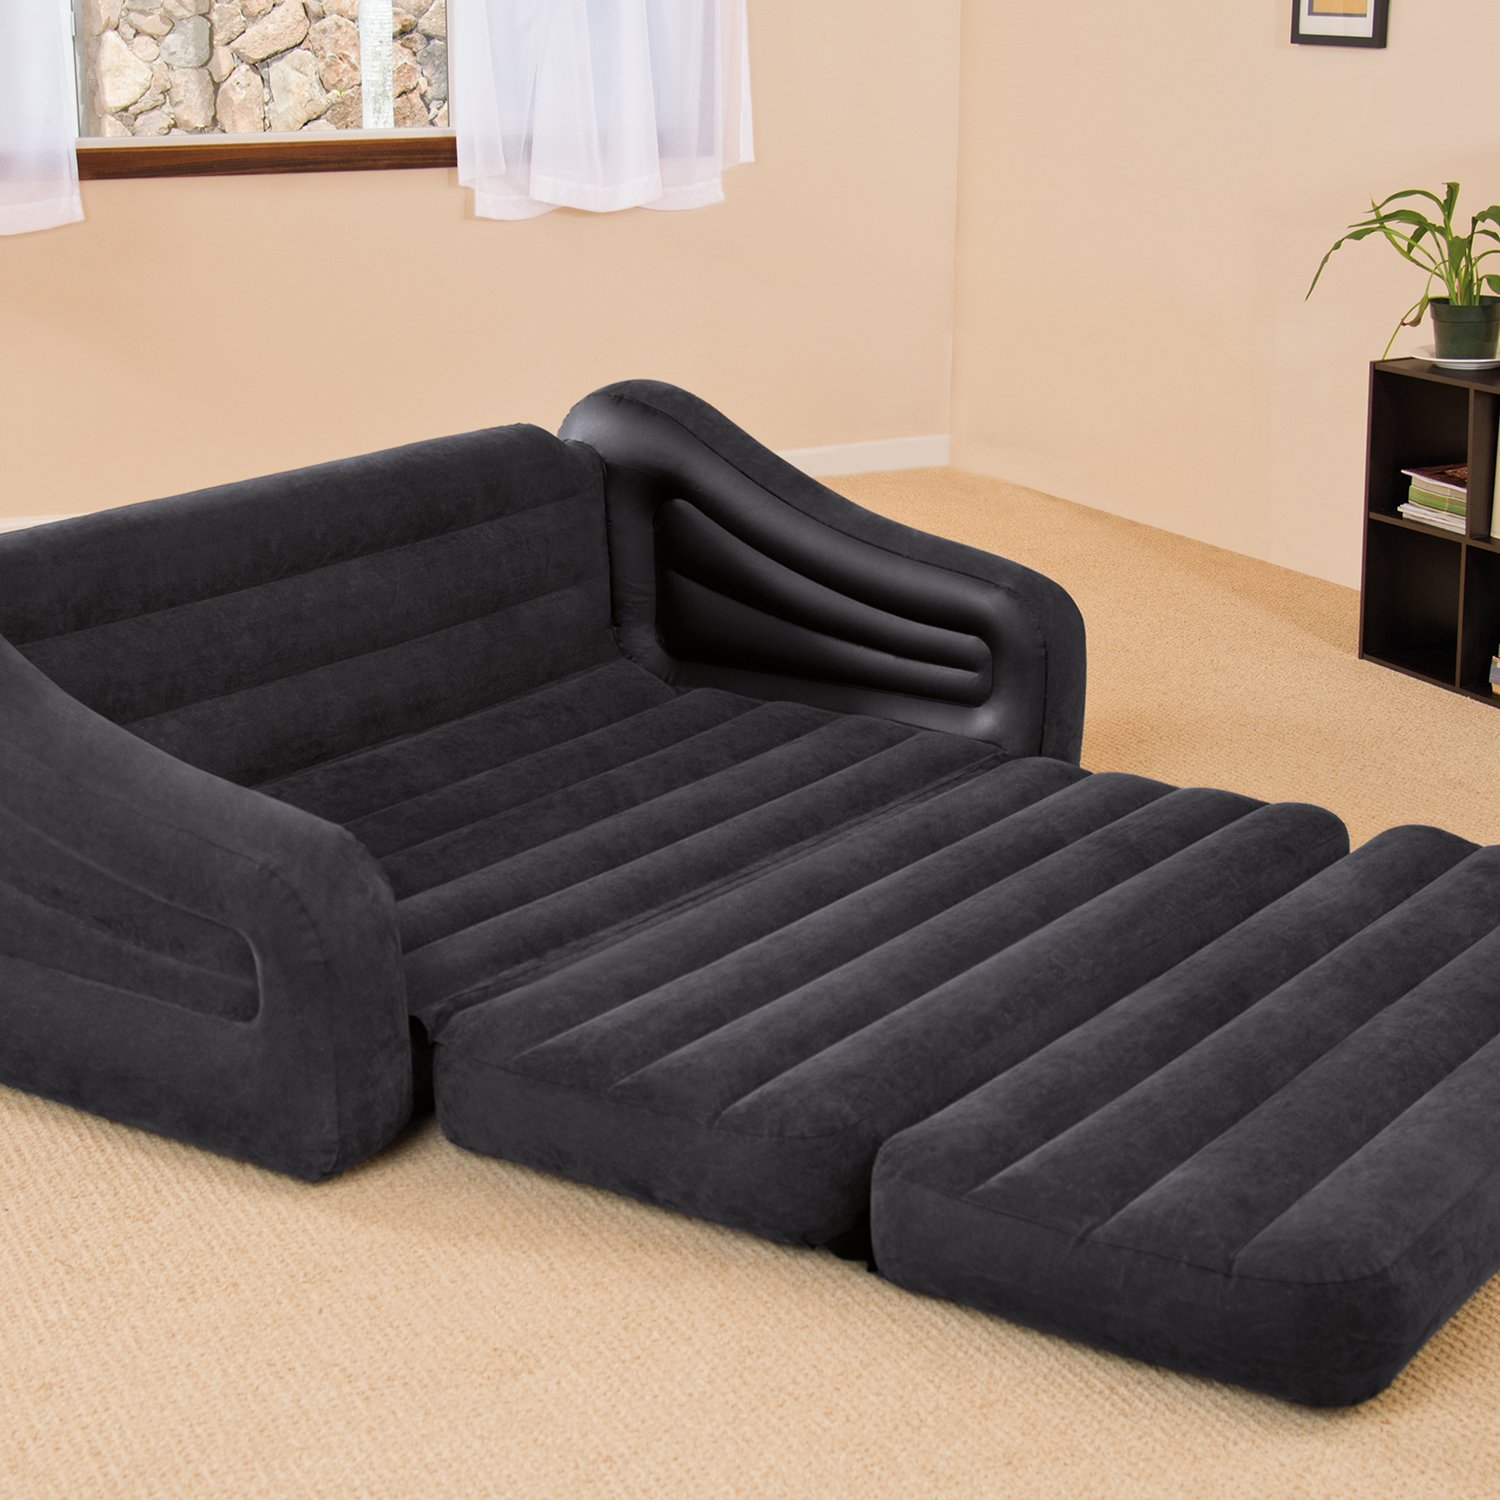 Intex inflatable queen size pull out futon sofa couch bed dark gray 68566ep ebay Couch and bed